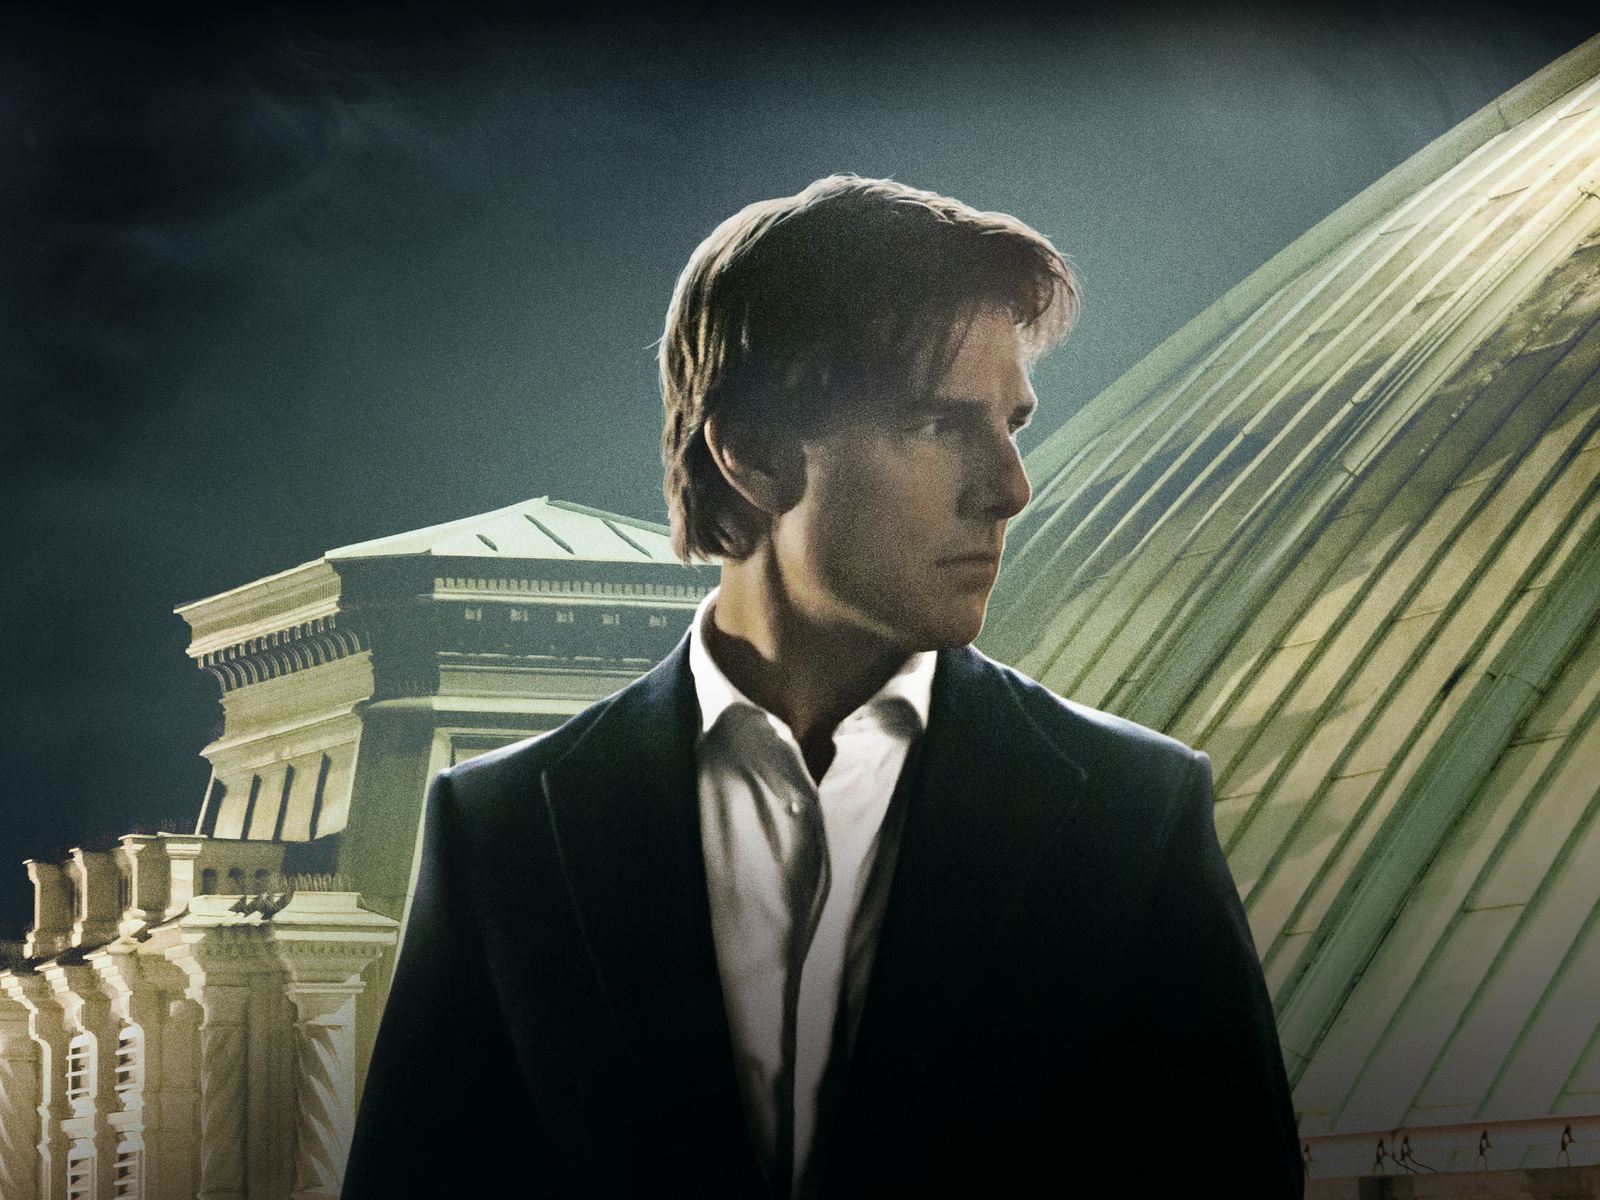 mission-impossible-tom-cruise-10k-rb.jpg